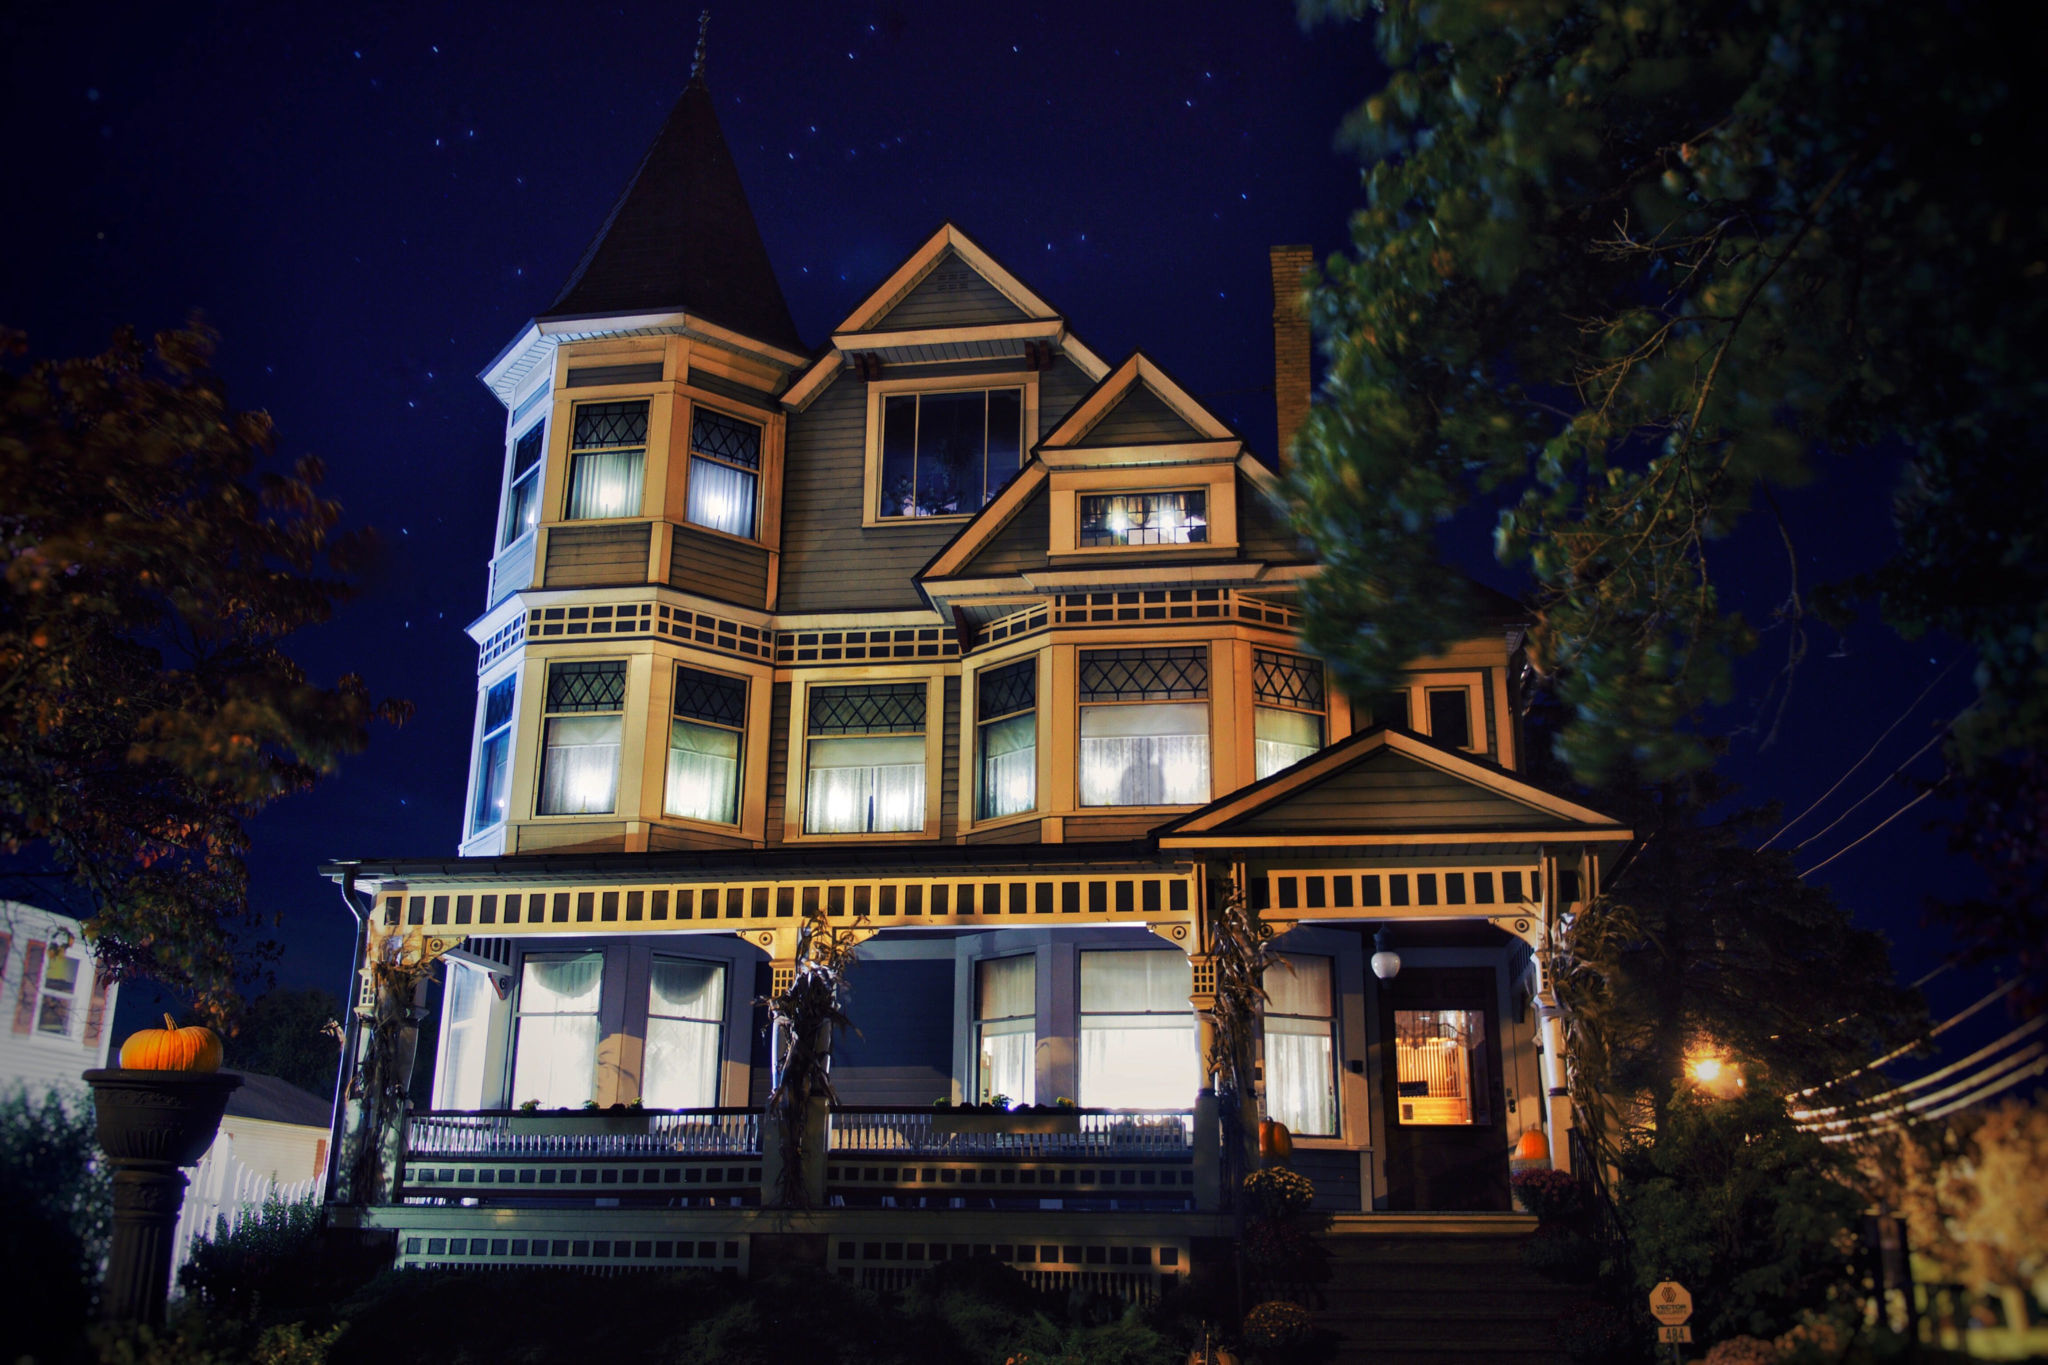 HALLOWEEN AT THE MANSION - GHOST WALKS